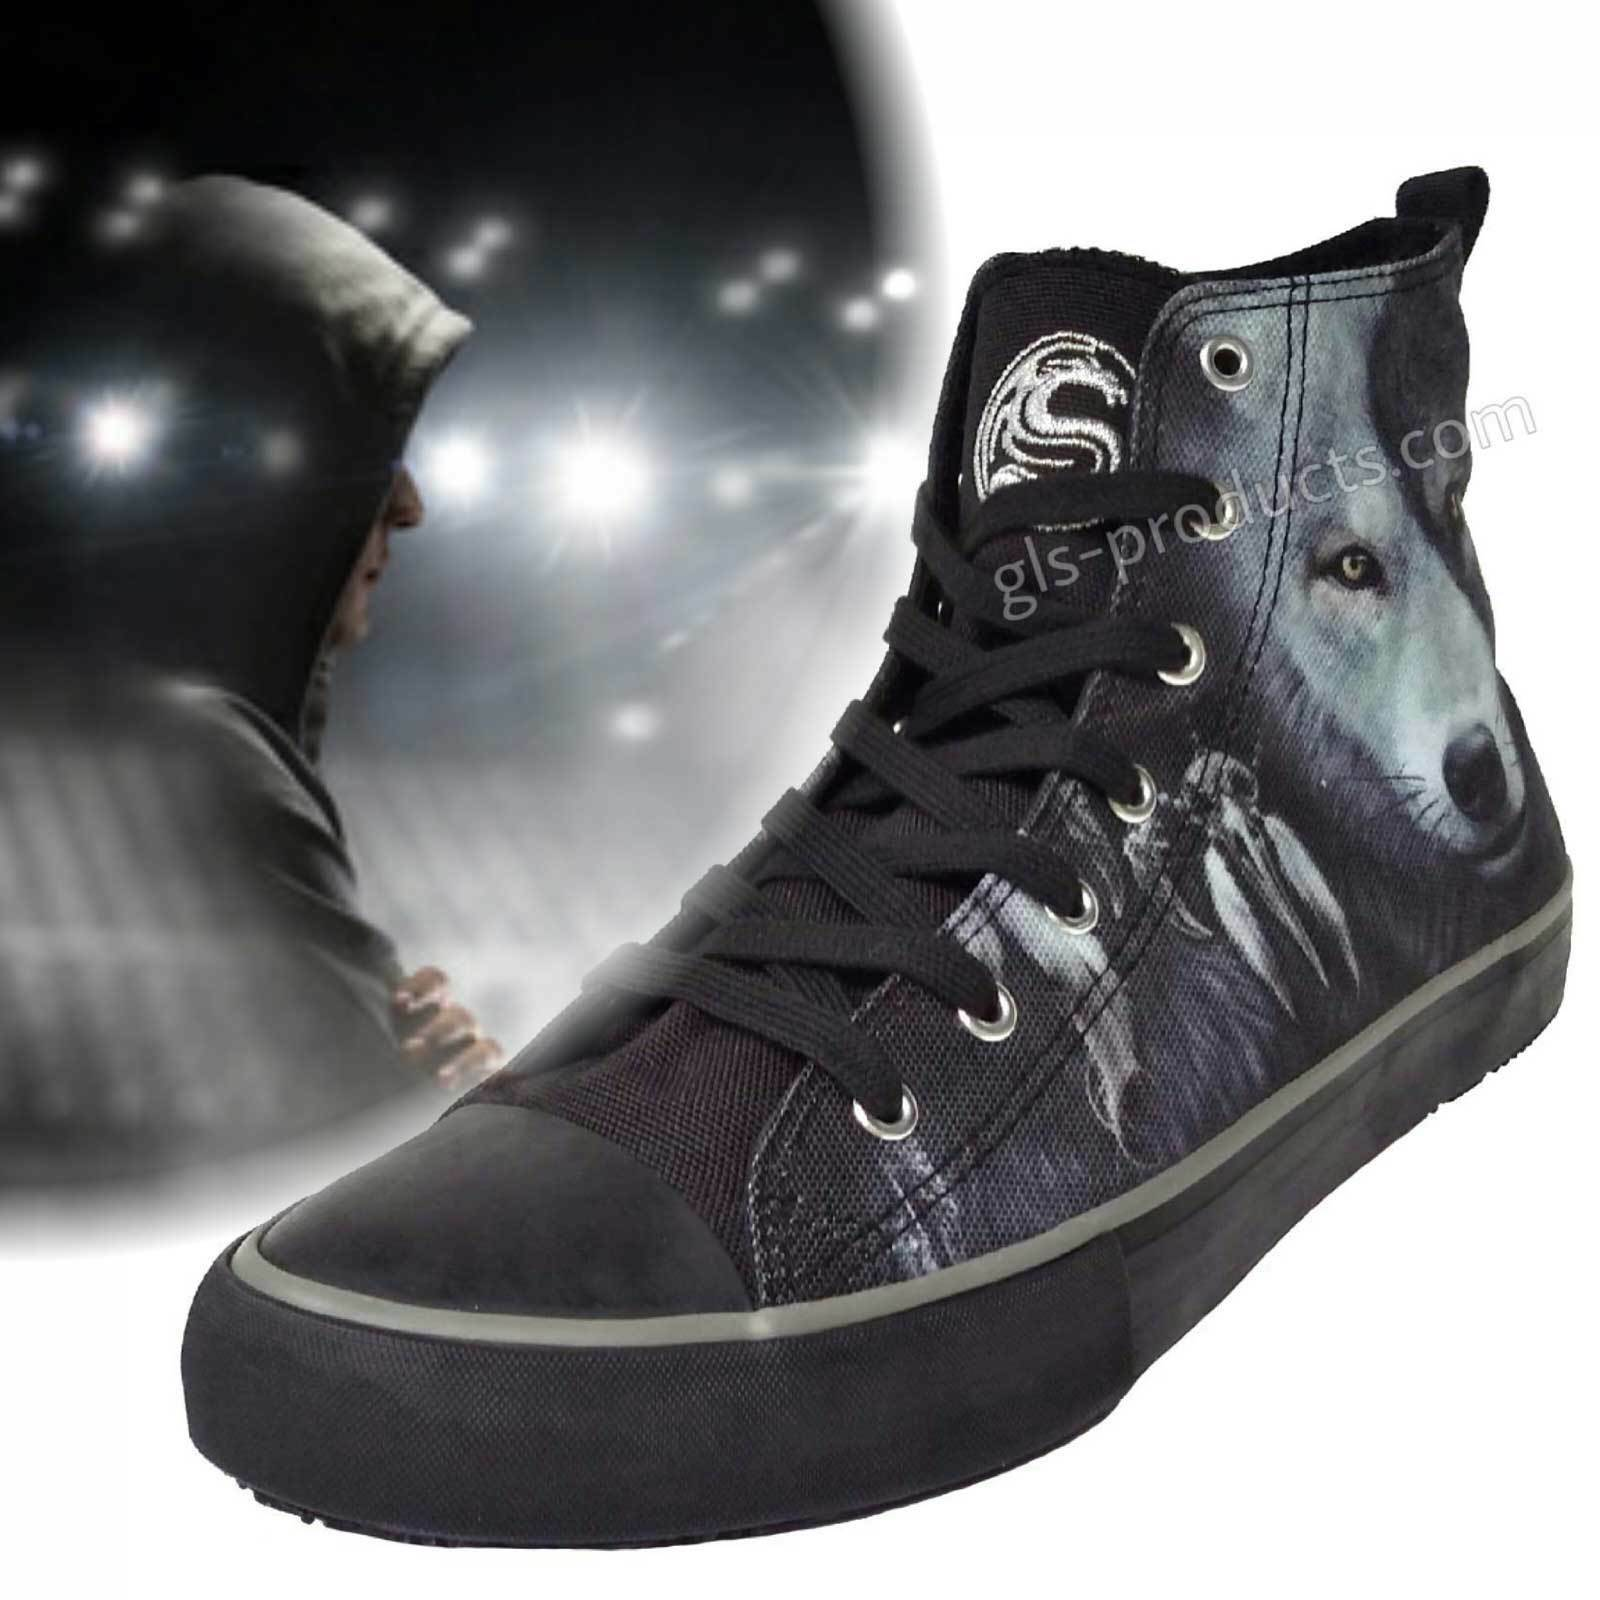 Wolf Chi High-Top Trainers - Canvas, 7 Holes - Sneakers Basketball Skater Gothic Scarpe classiche da uomo